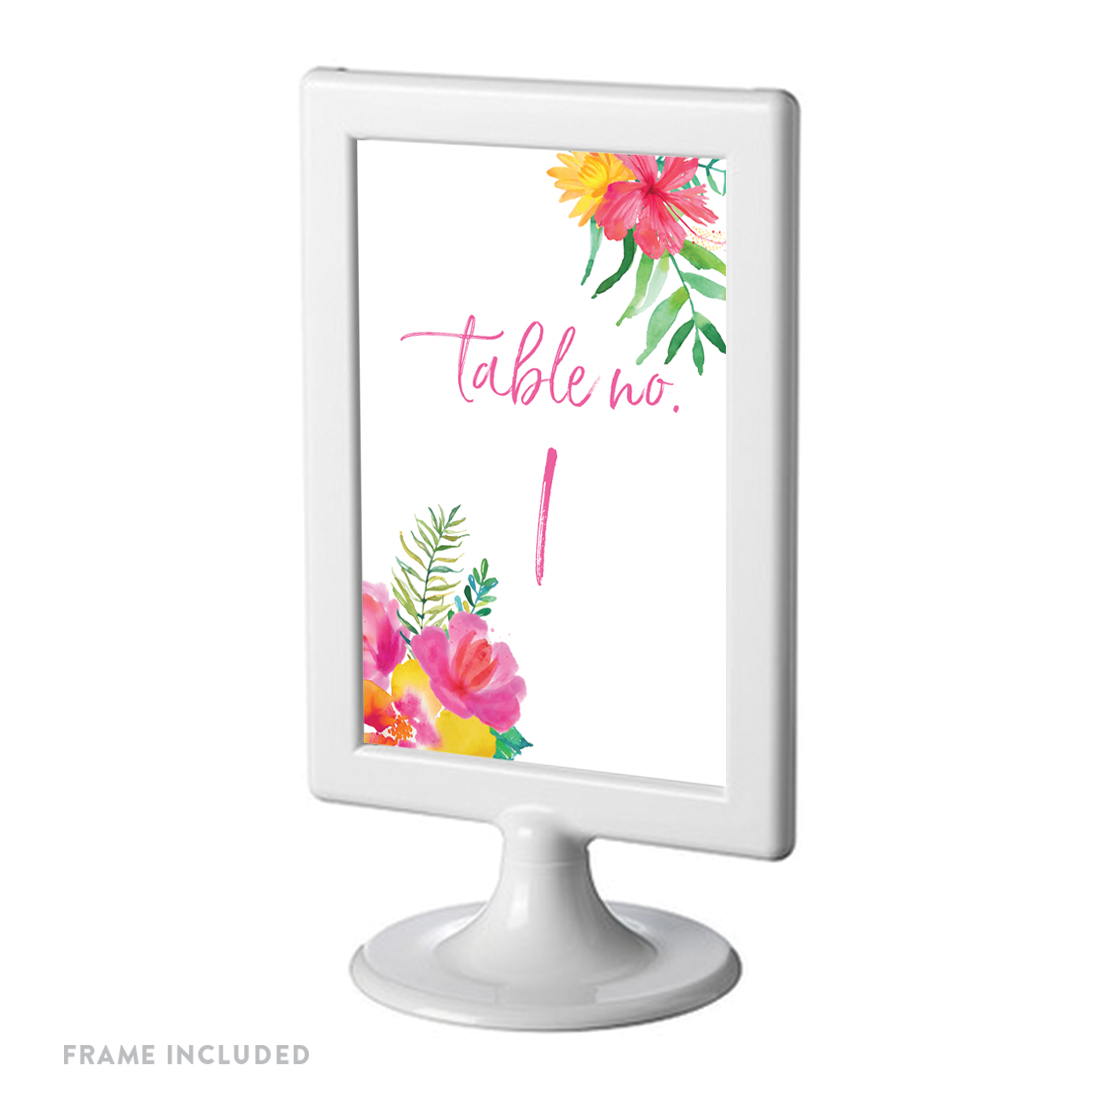 Tropical Floral Garden Party Wedding, Table Numbers 1 - 8 on Perforated Paper, 4 x 6-inch Includes Frames